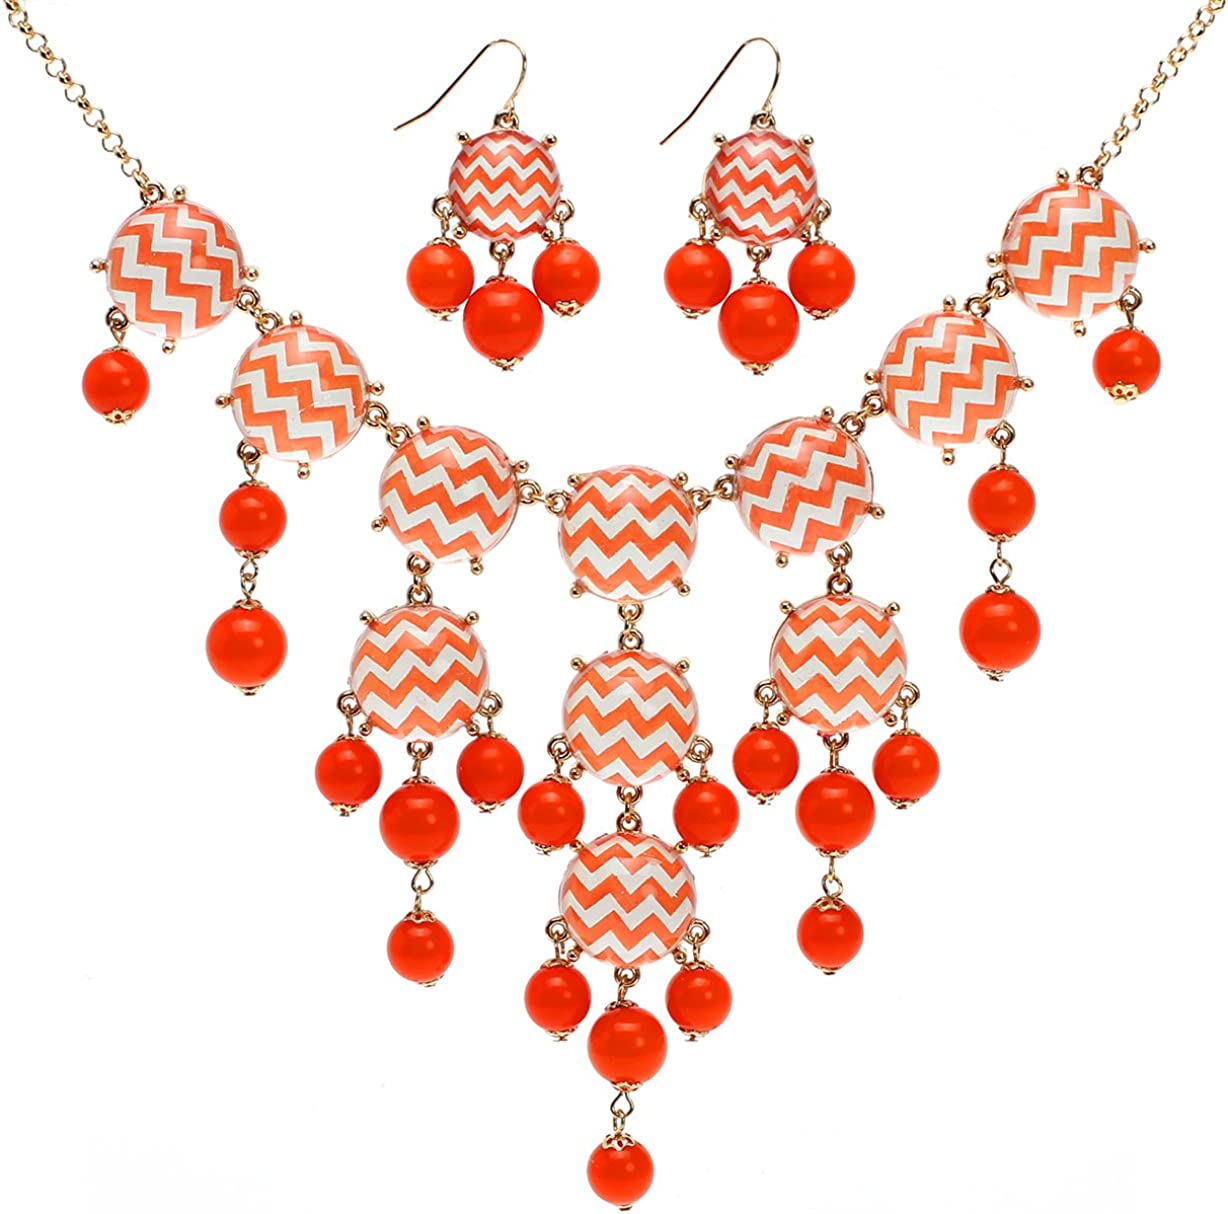 Lova Jewelry Electric Wave Necklace and Earrings Set